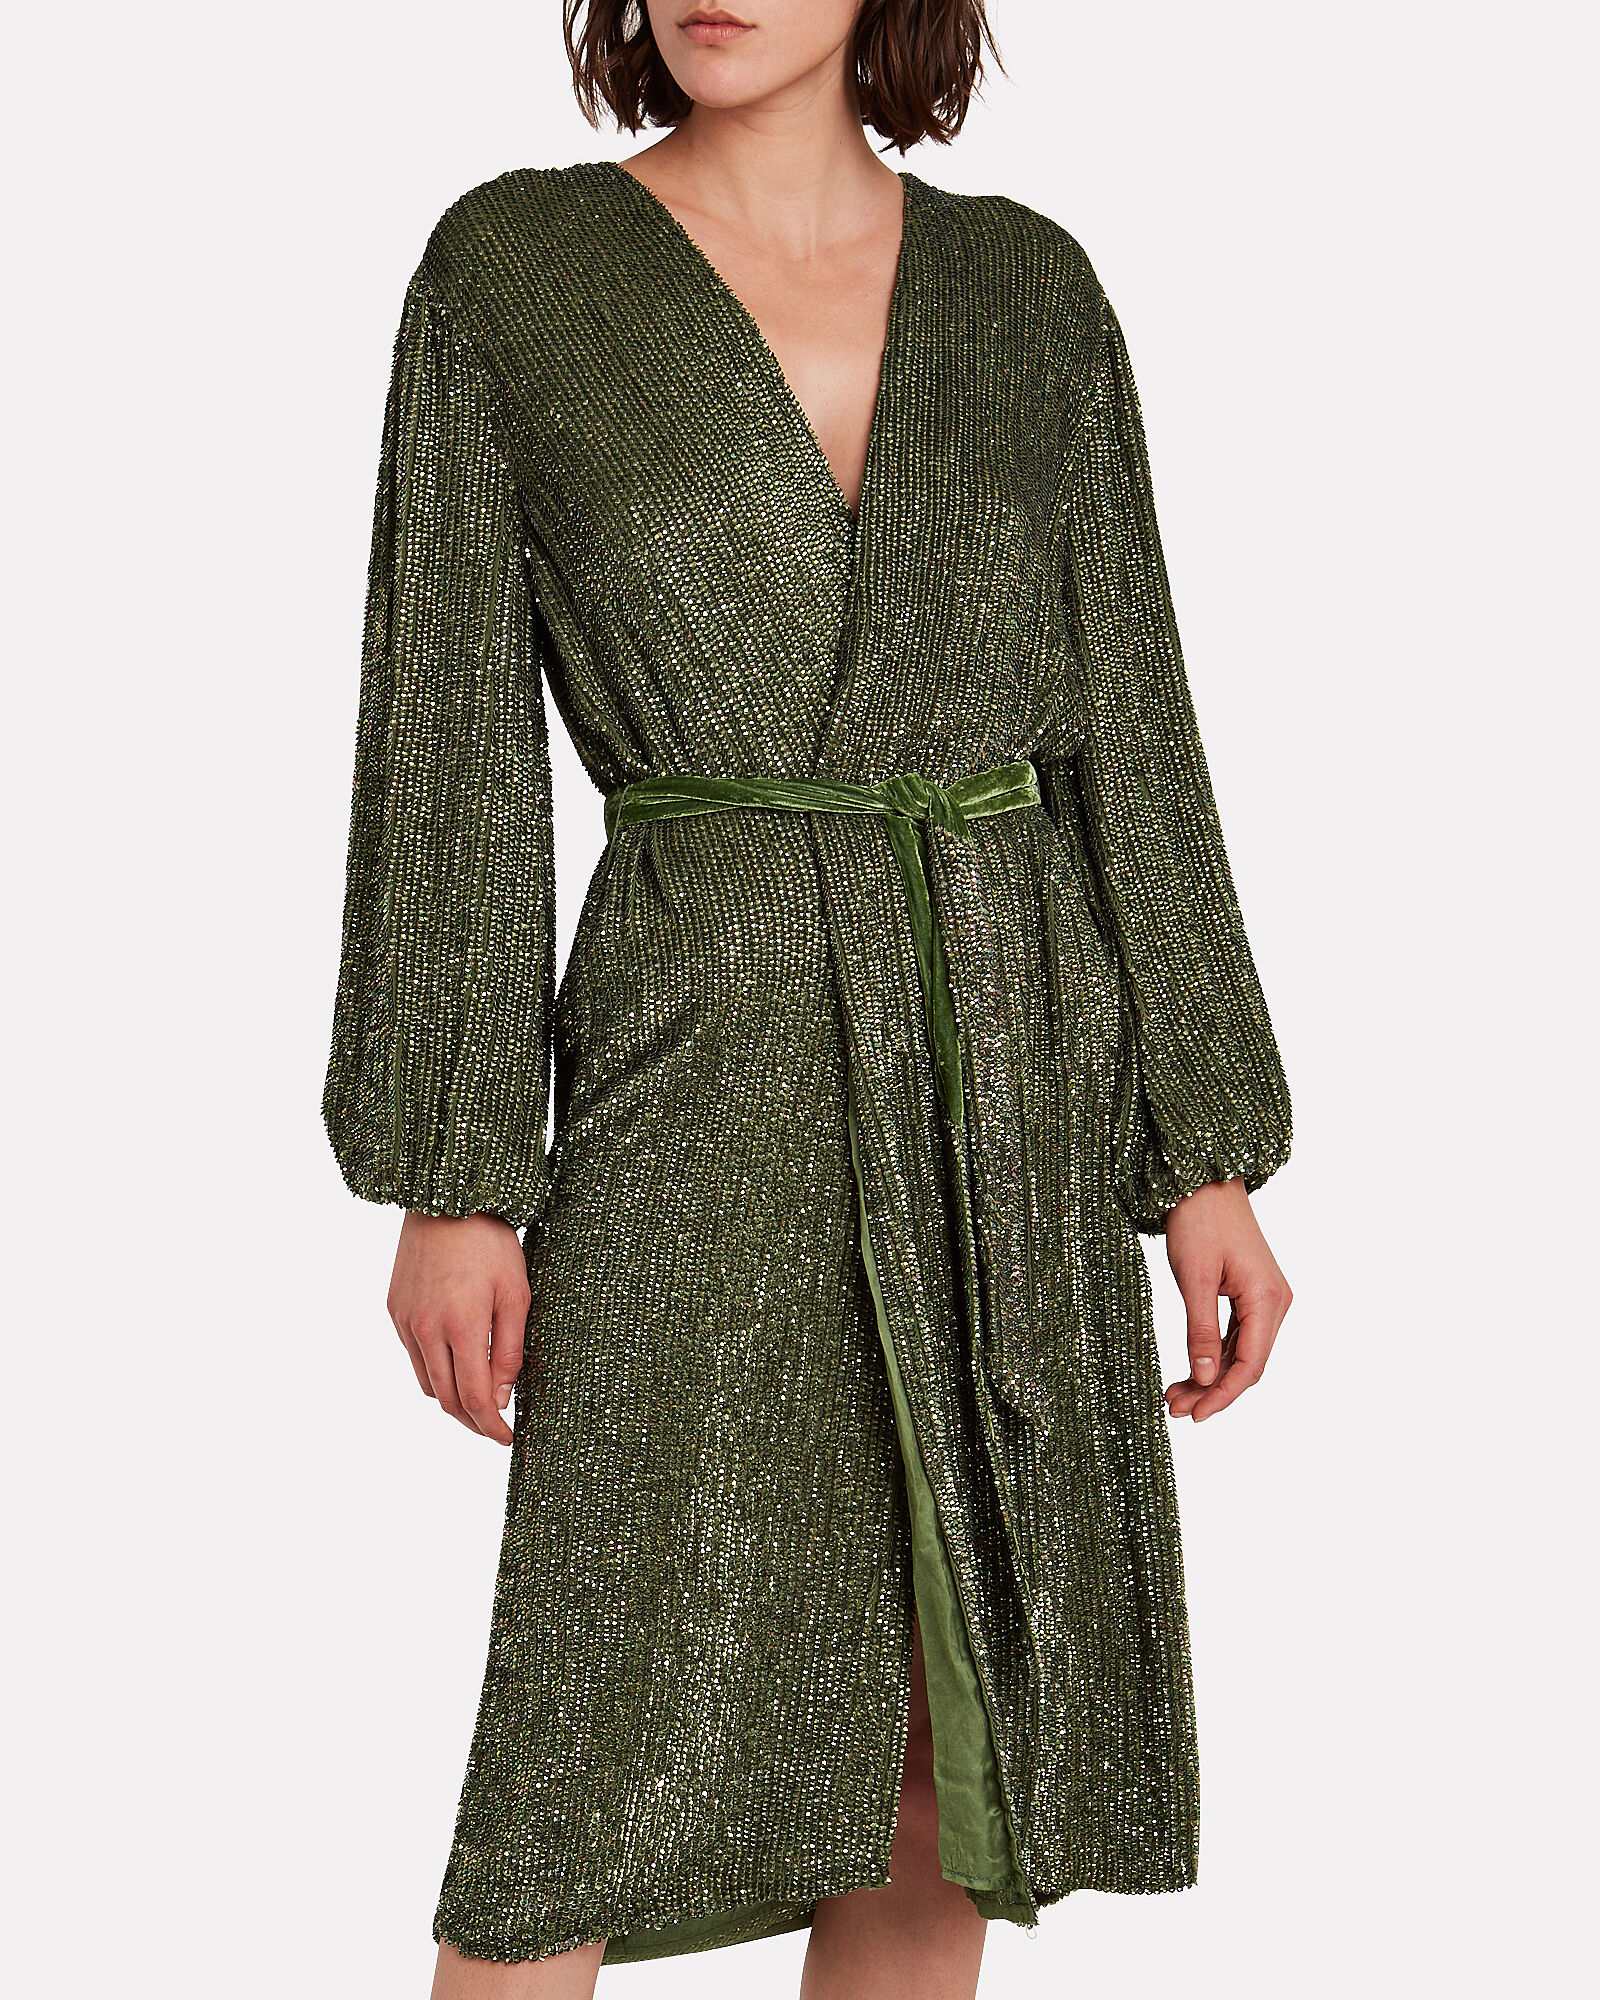 Audrey Sequin Wrap Dress, GREEN, hi-res